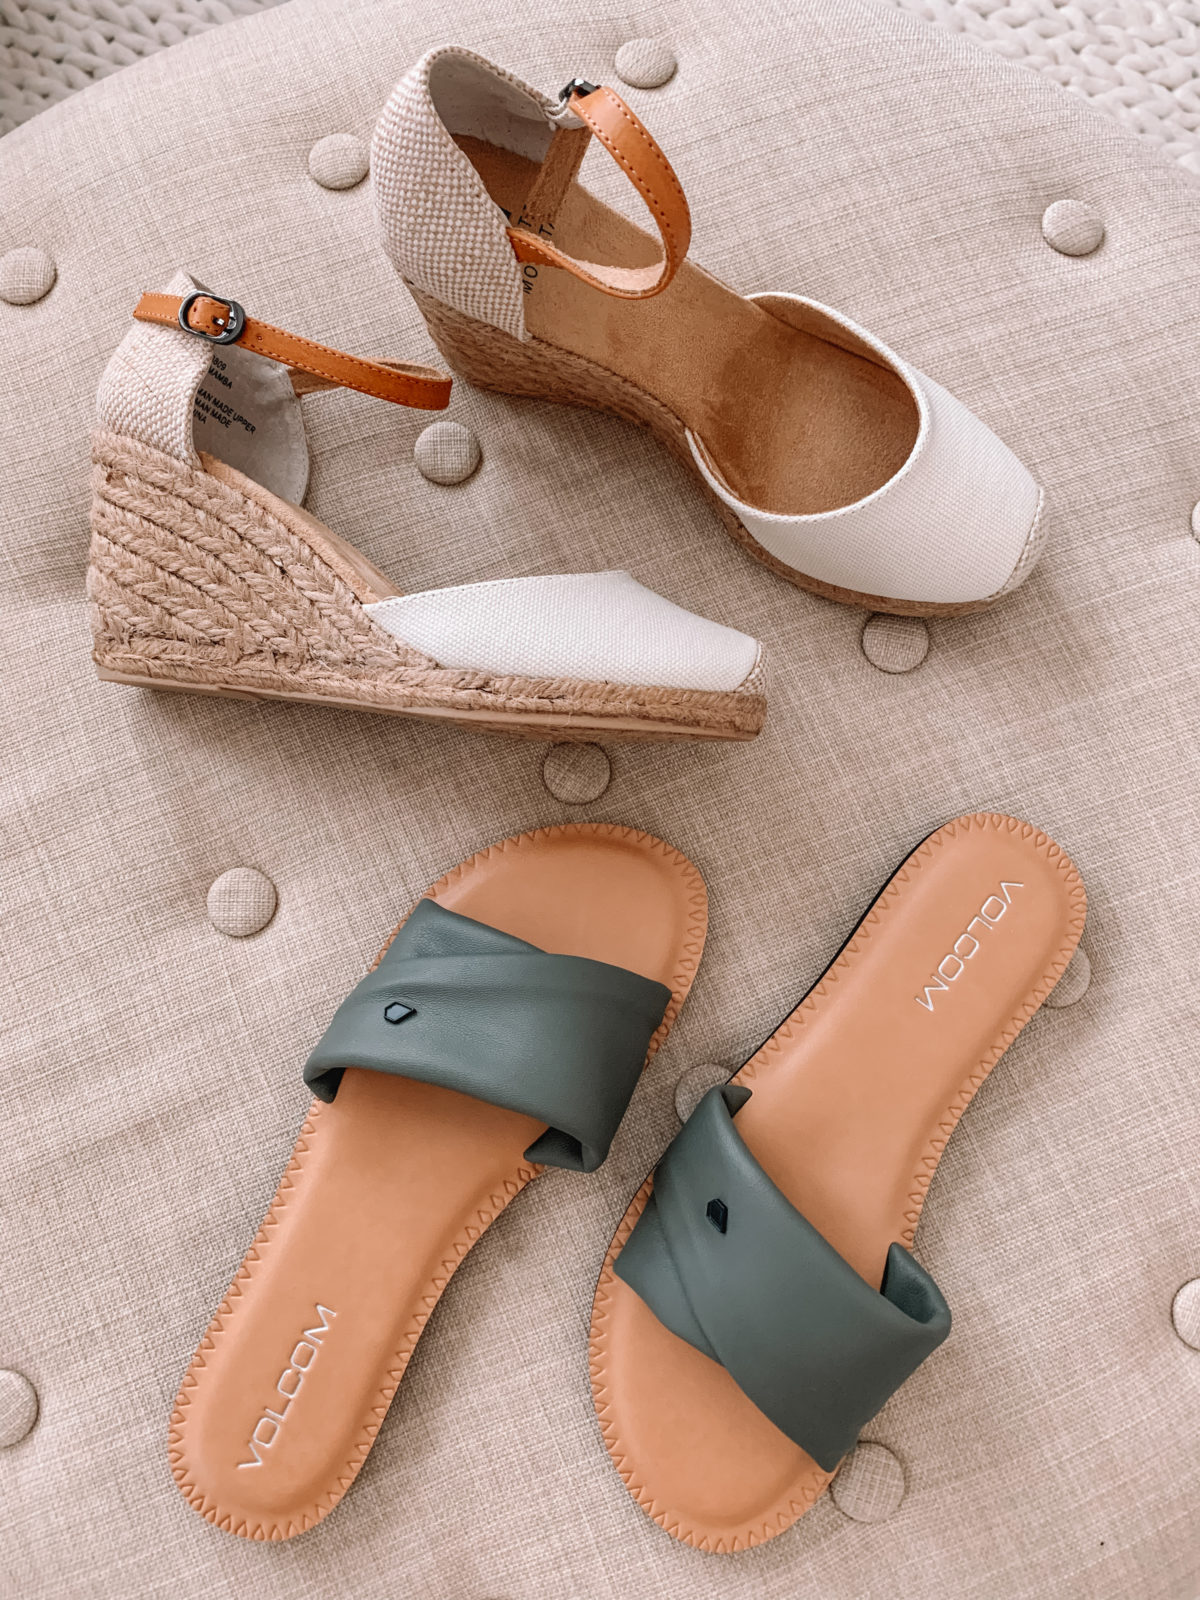 Amazon Fashion Finds, Espadrille Sandals, Slide Sandals